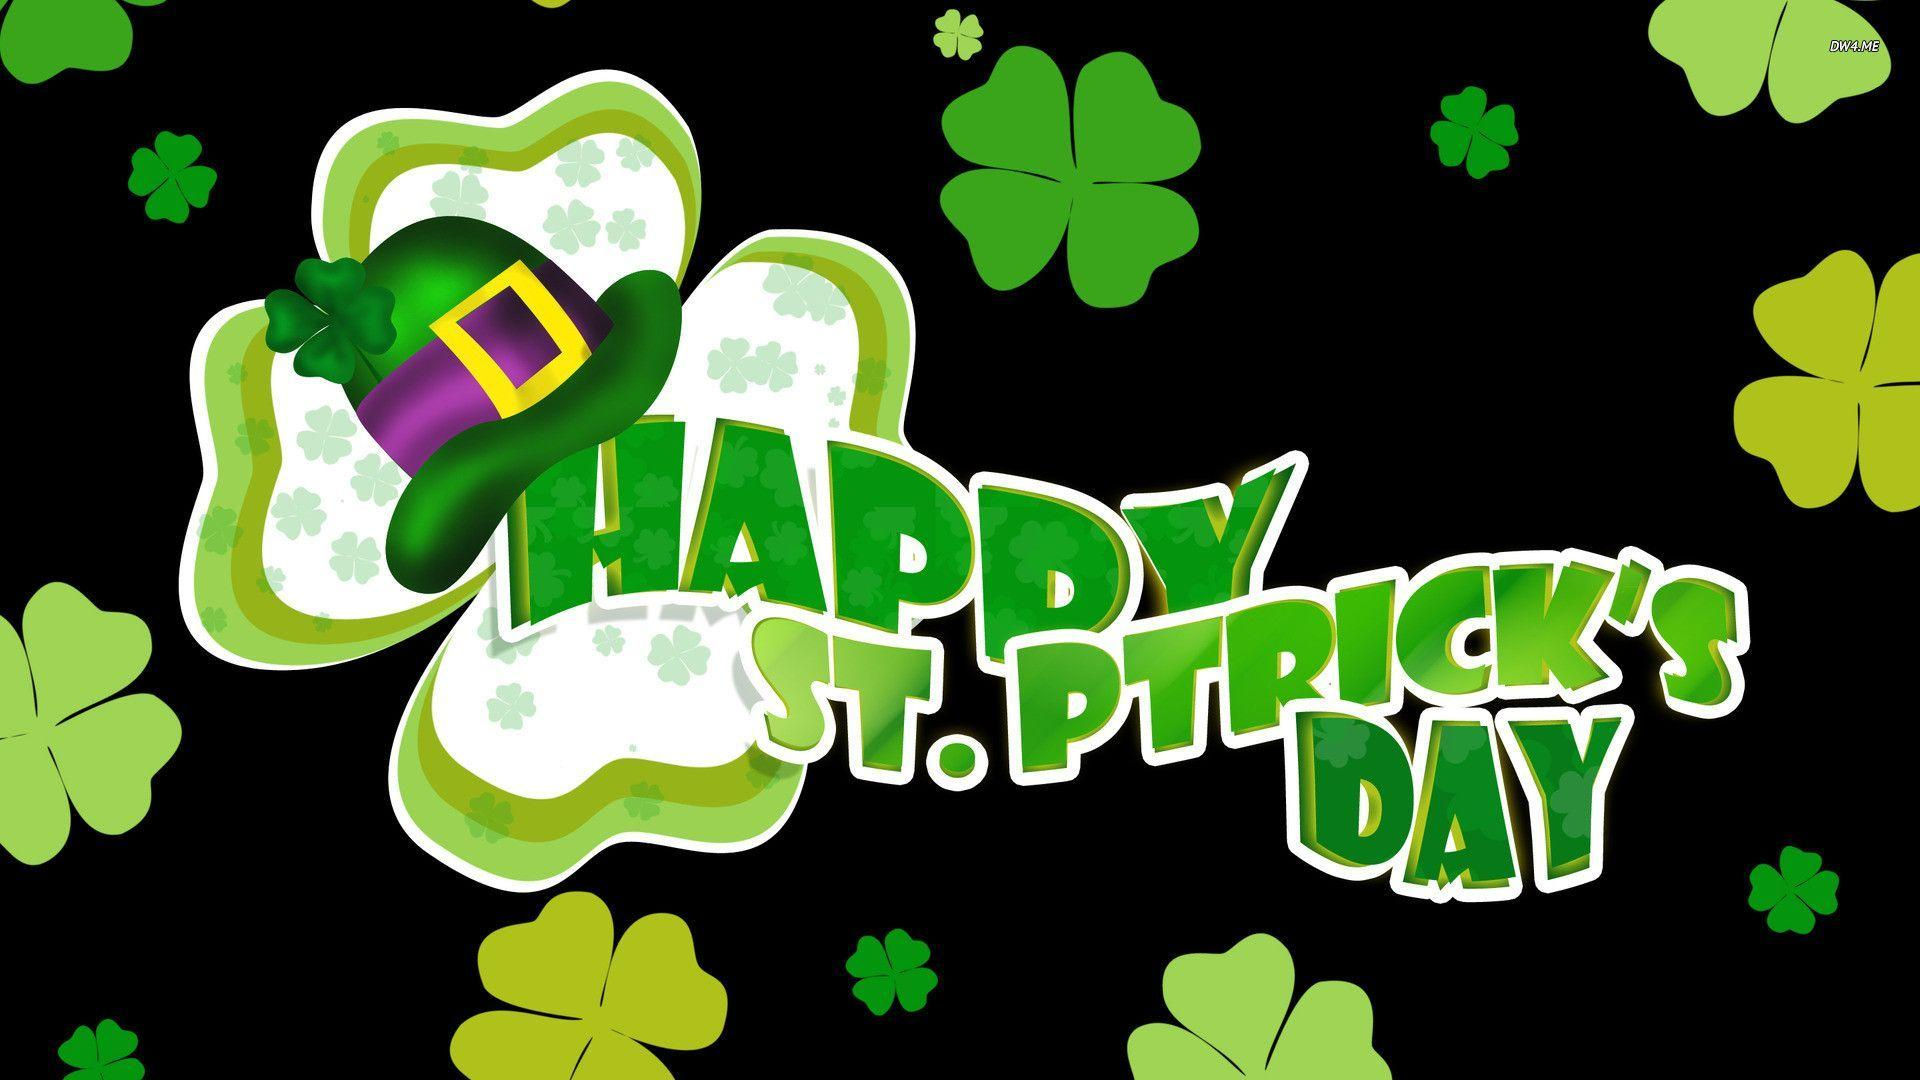 Happy St. Patrick&Day wallpapers